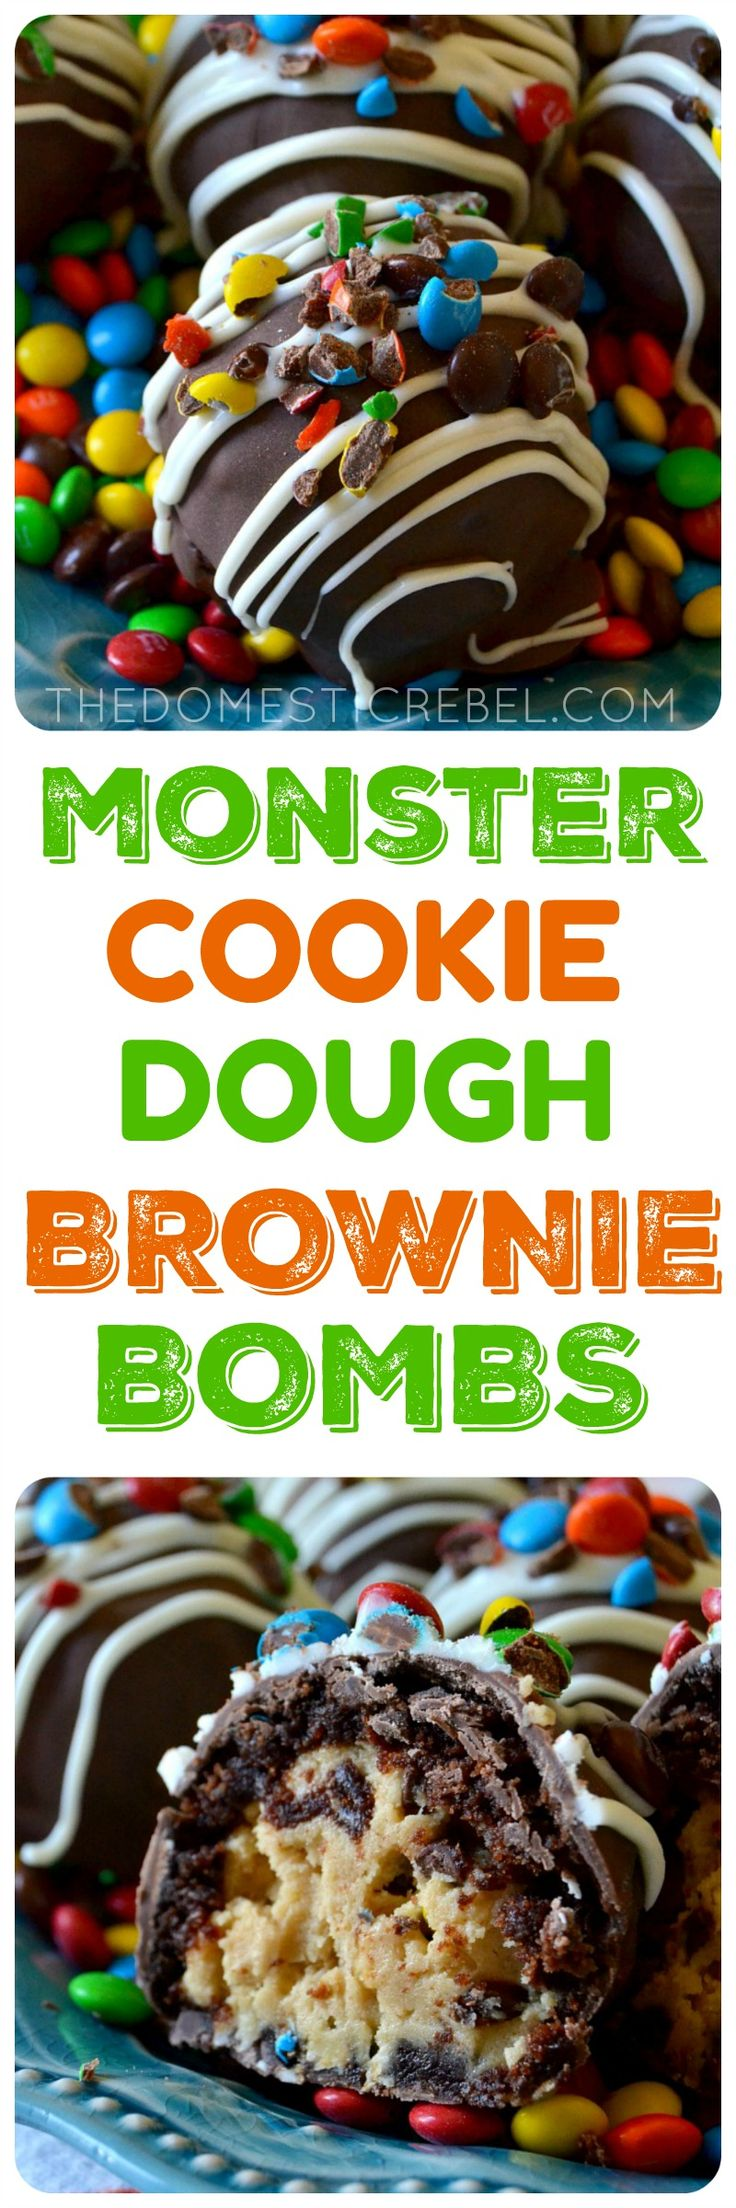 "These Monster Cookie Dough Brownie Bombs are DELICIOUS! ""Monster"" cookie dough flavored with peanut butter, oats, chocolate chips and M&M's is surrounded by a fudgy baked brownie and coated in chocolate and more candy! Perfect for parties, gifts, or just to cure a serious chocolate craving! ~ The Domestic Rebel"